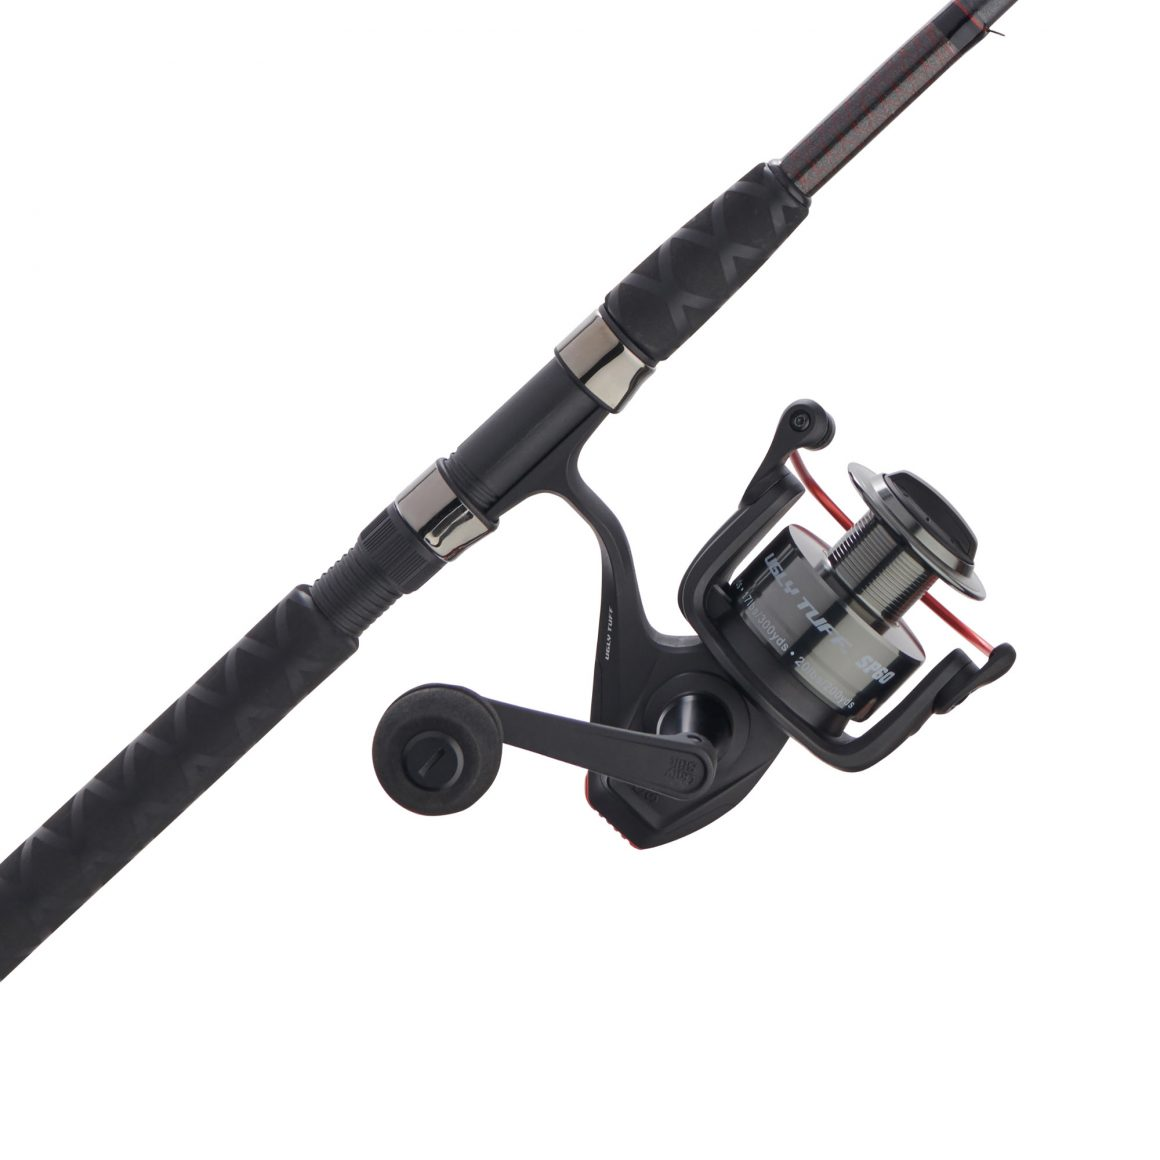 Ugly Stik Combos and Catfish Rods